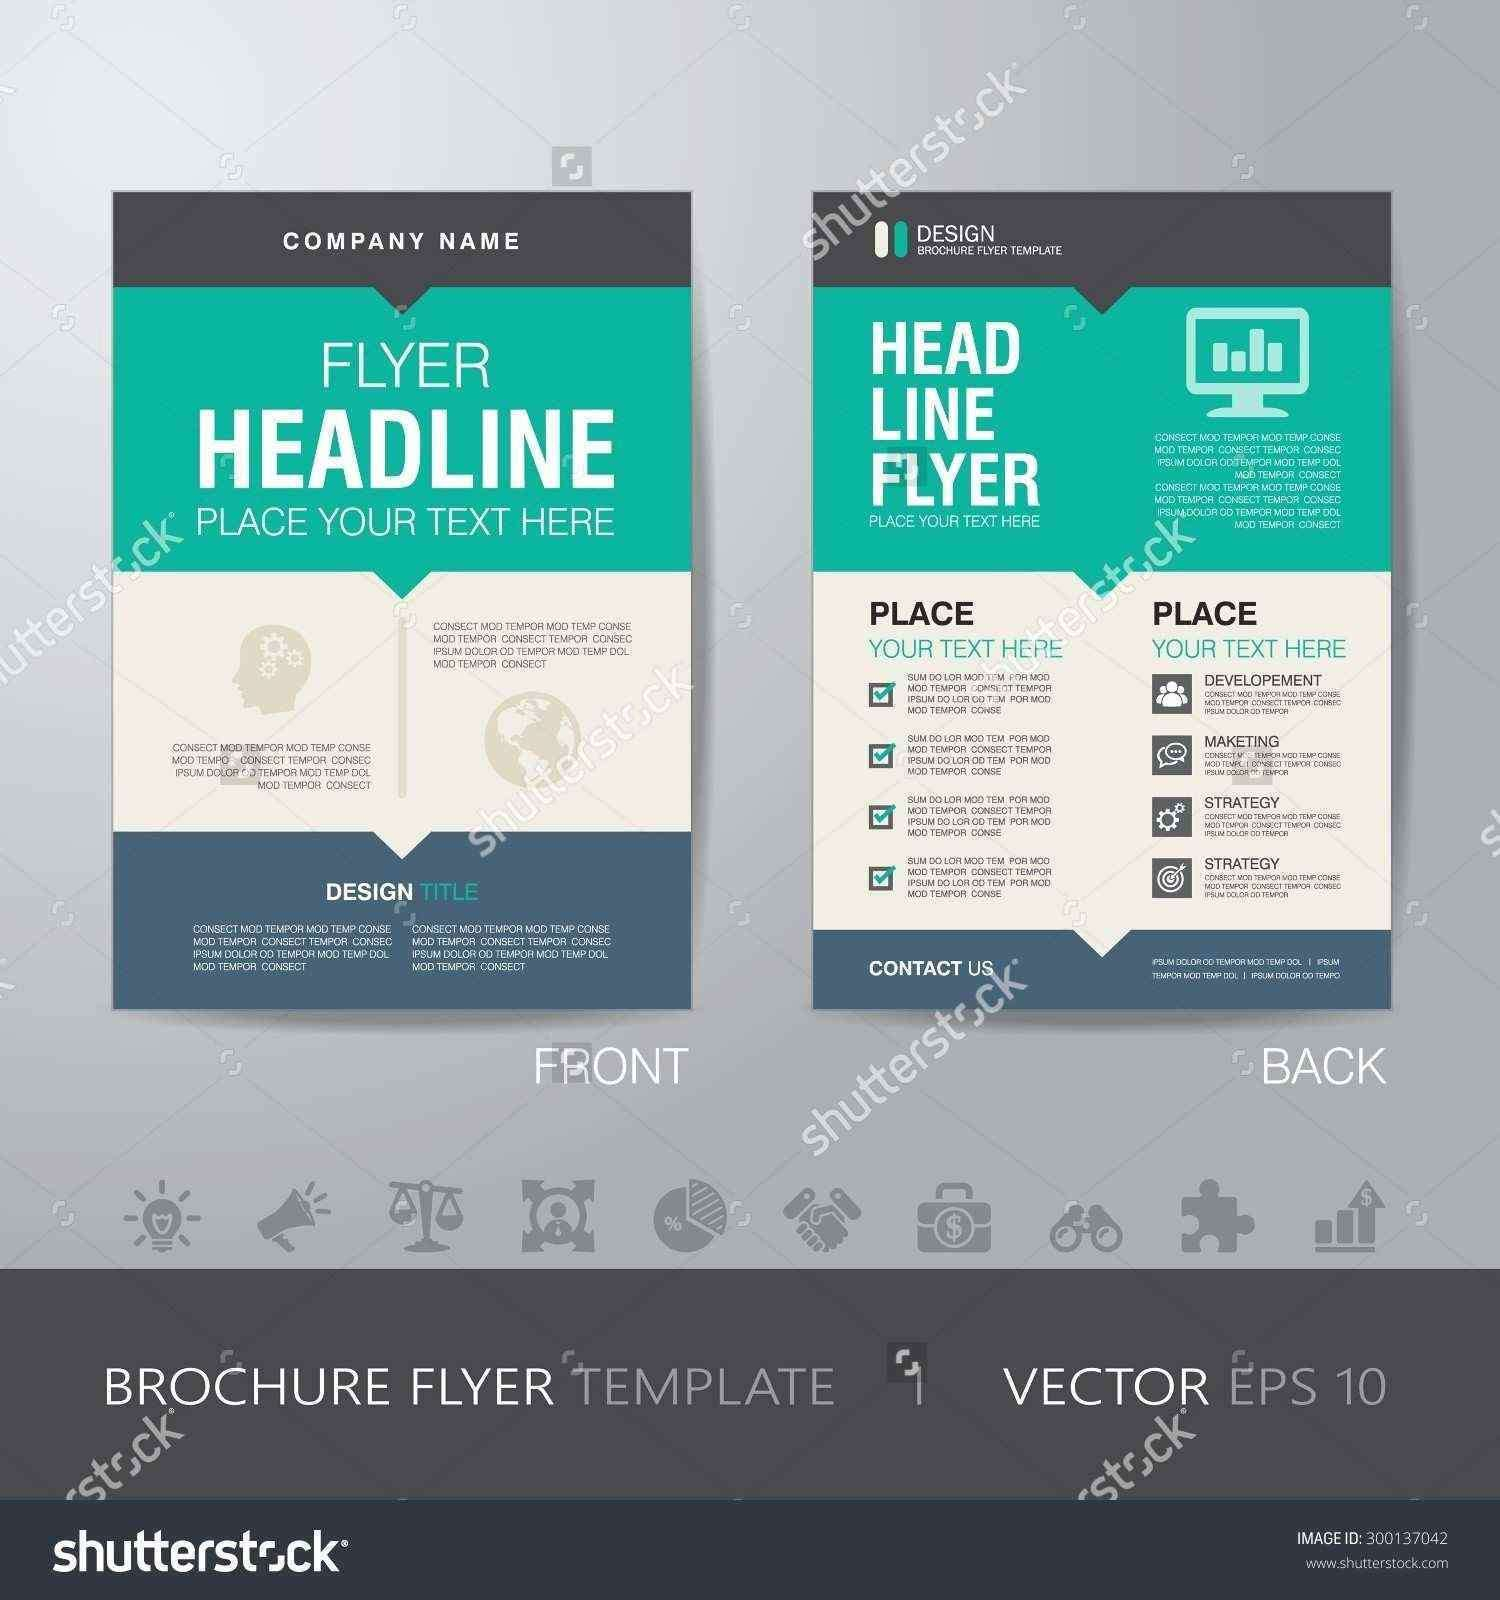 25 Free Printable Business Cards Templates - Californiaenergynews - Free Printable Yearbook Templates